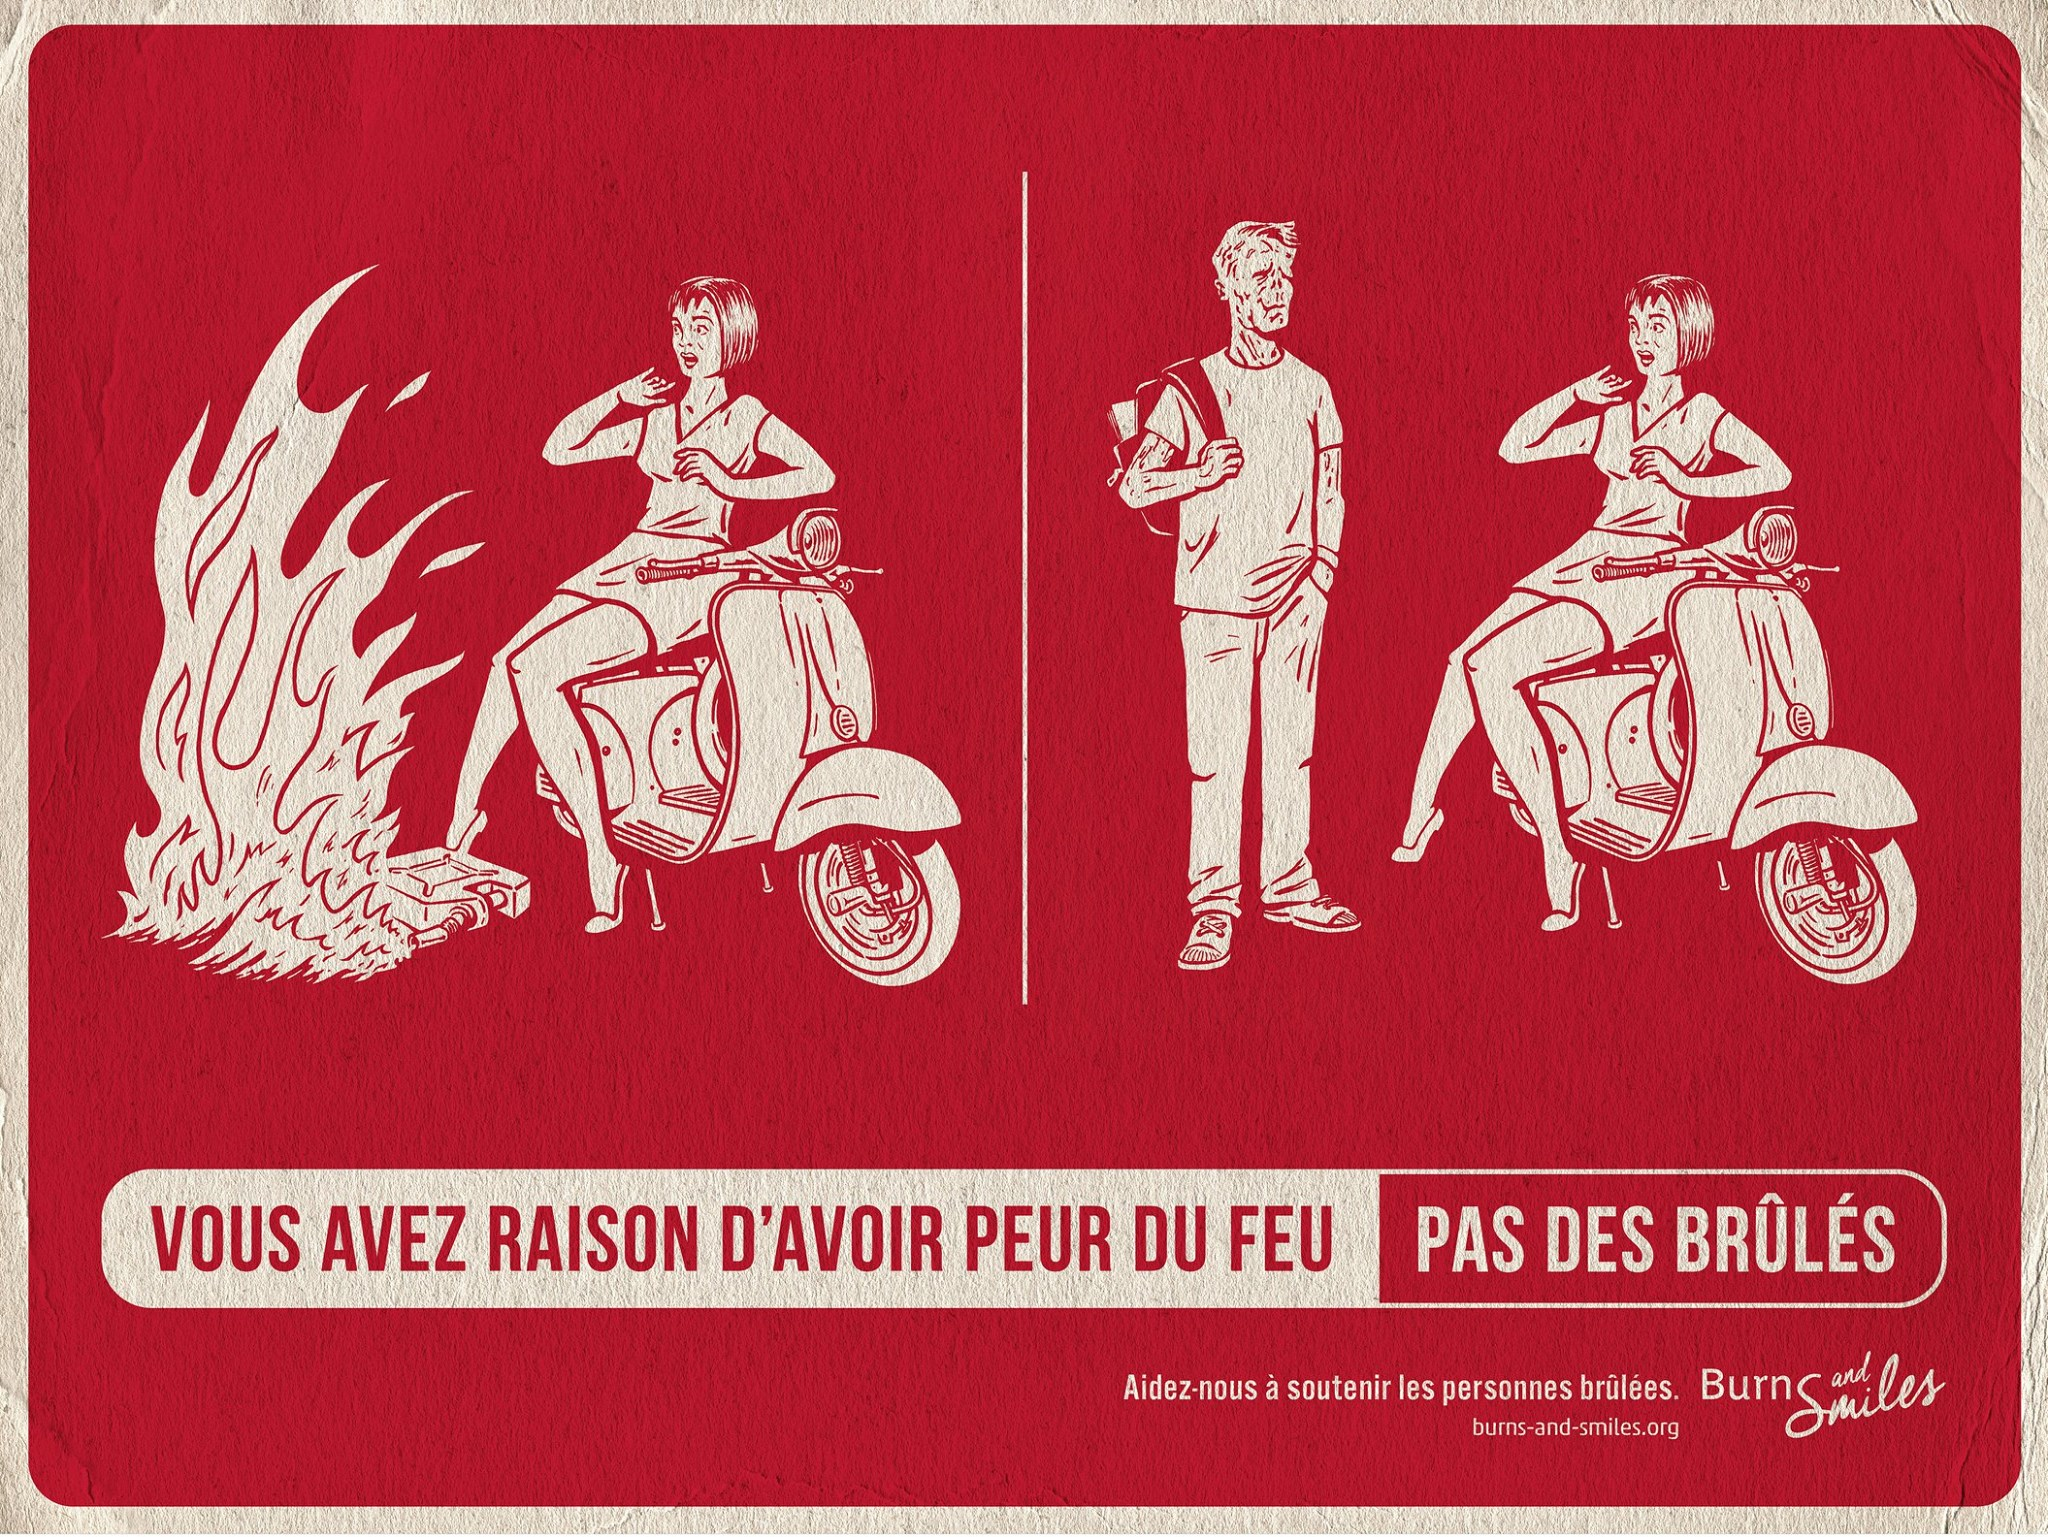 burns-and-smiles-publicite-communication-print-press-ad-feu-brules-burn-agence-tbwa-paris-4